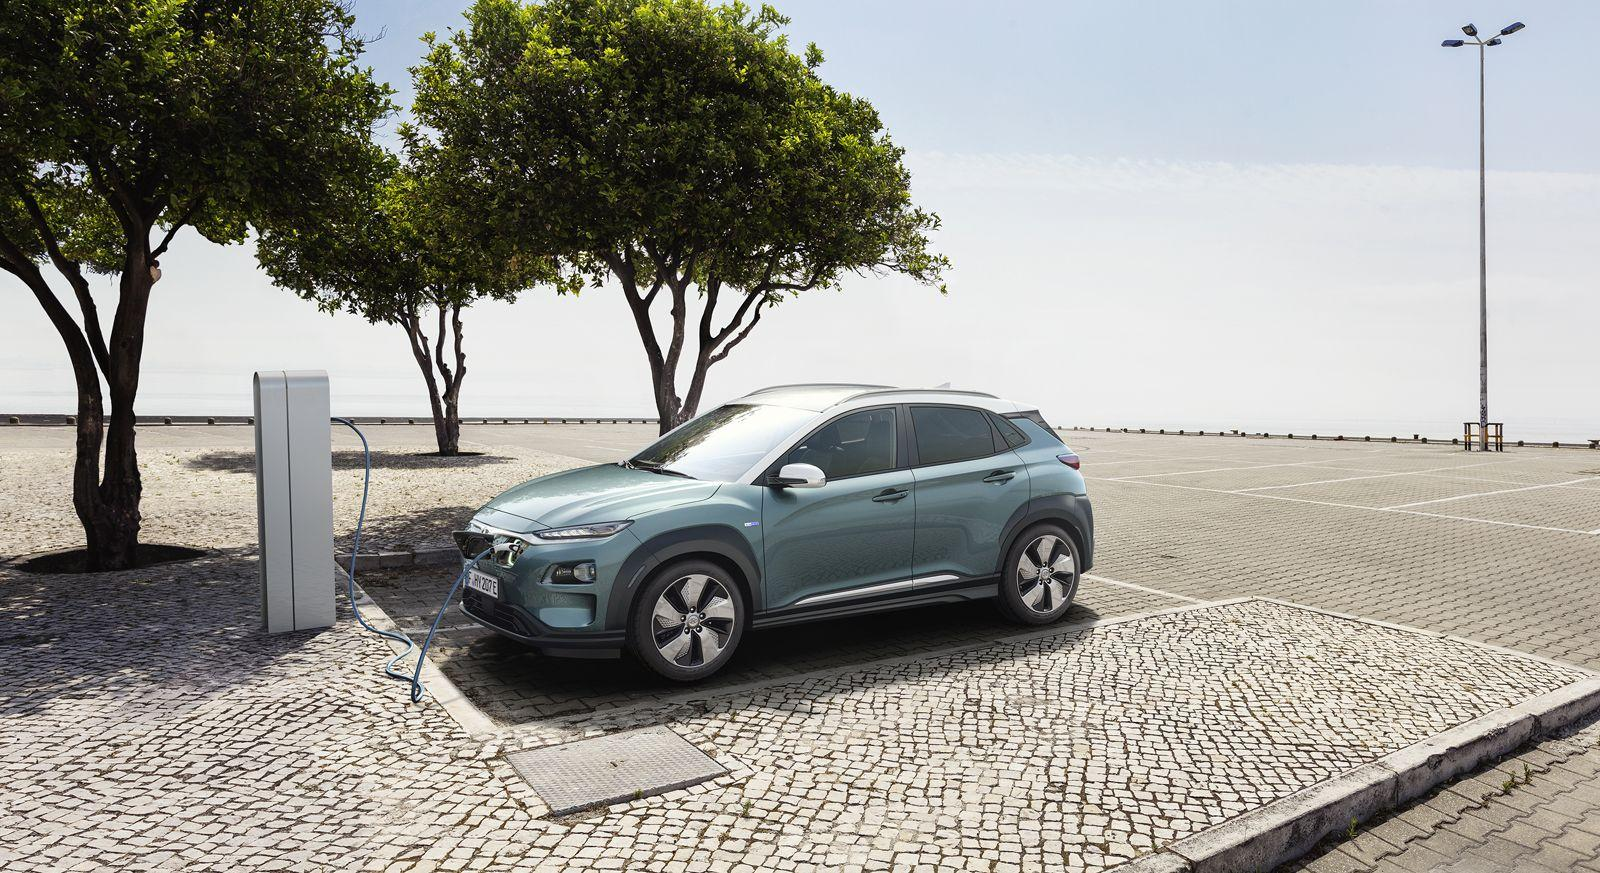 Hyundai Kona Electric Debuts With 298 Miles of Driving Range